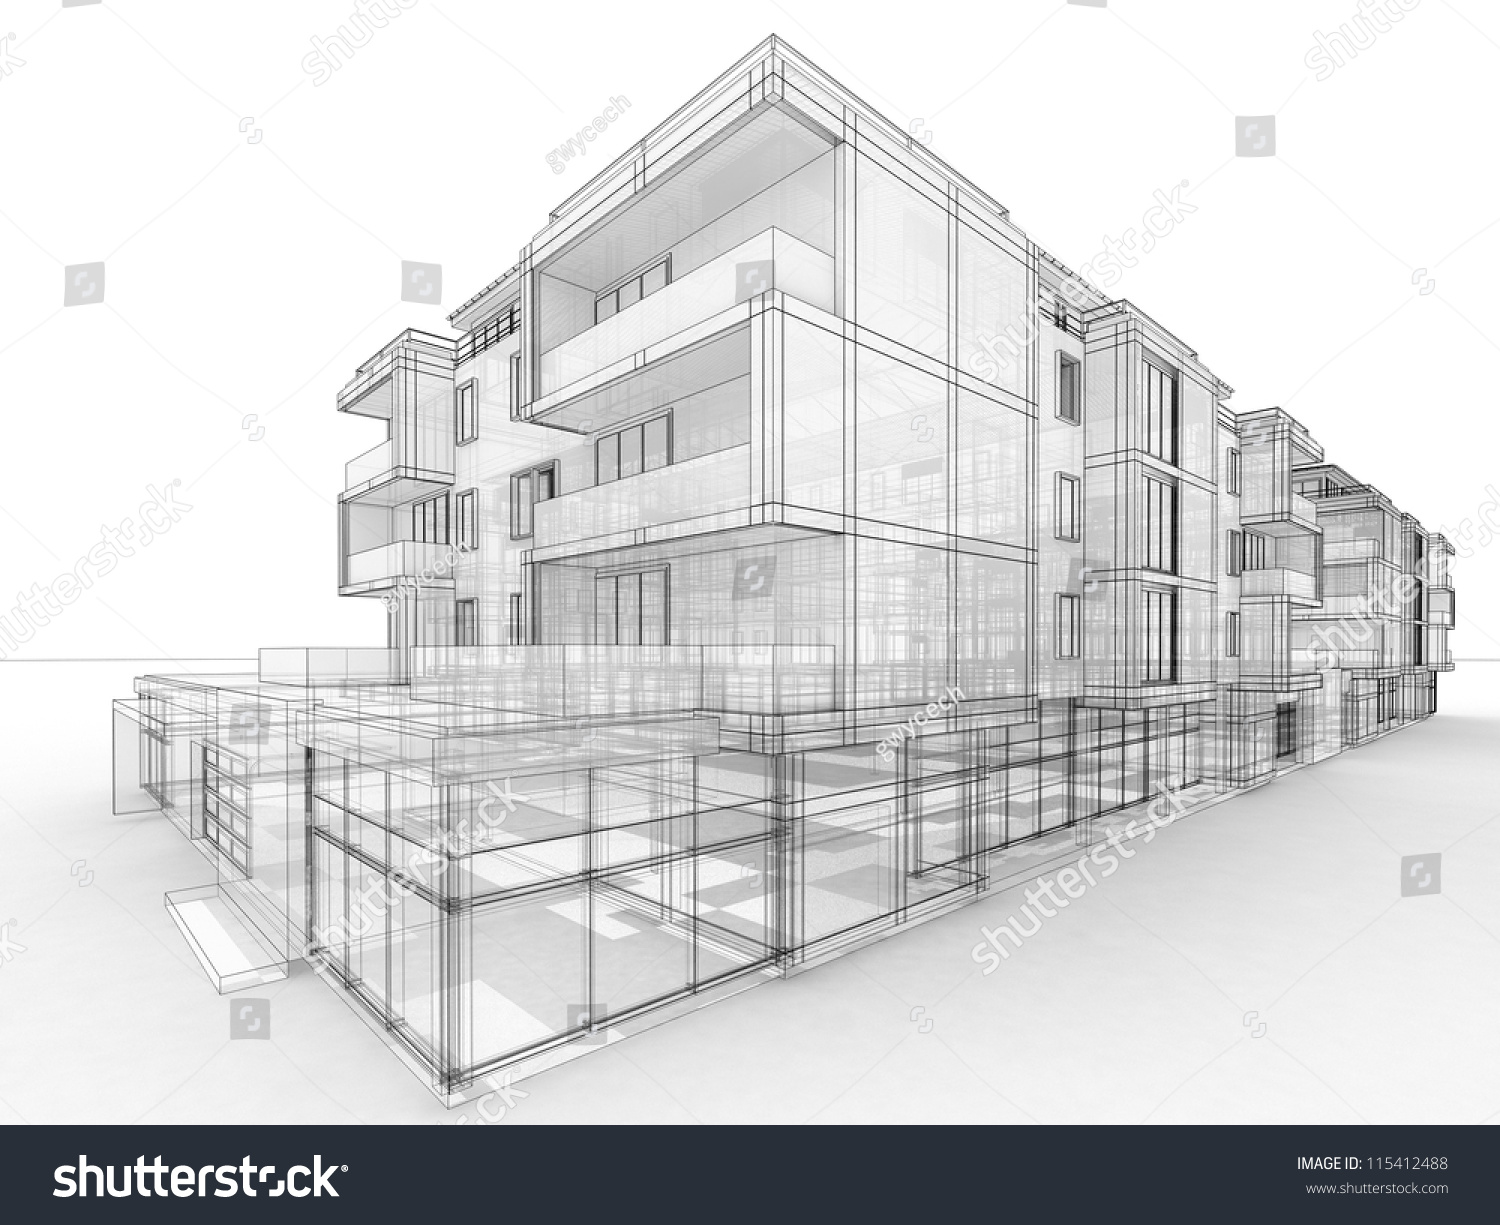 Apartment Building Design Concept Architects Computer